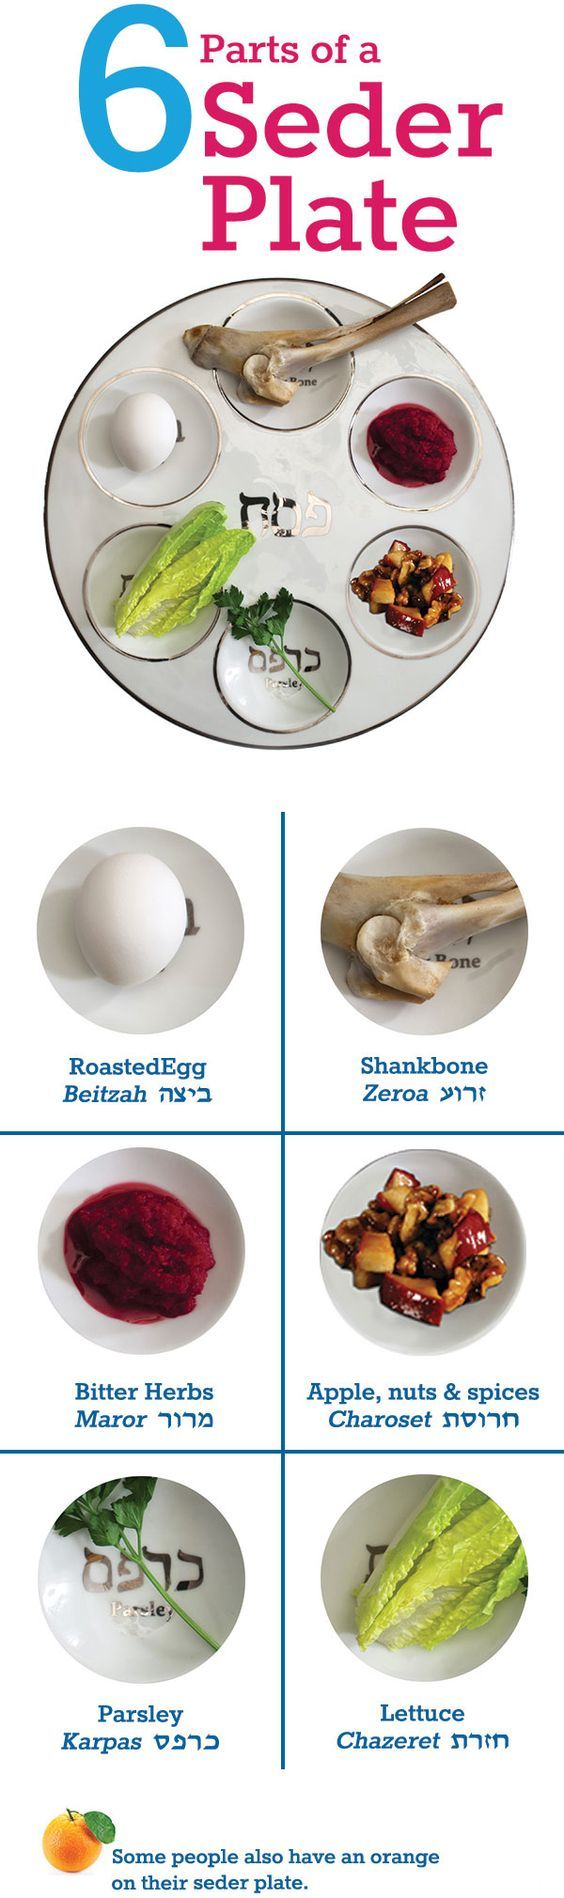 Learn about why some people put an orange on their seder plate, and other modern additions.   Six Parts of the Seder Plate  Beitzah: The Roasted Egg is symbolic of the festival sacrifice made